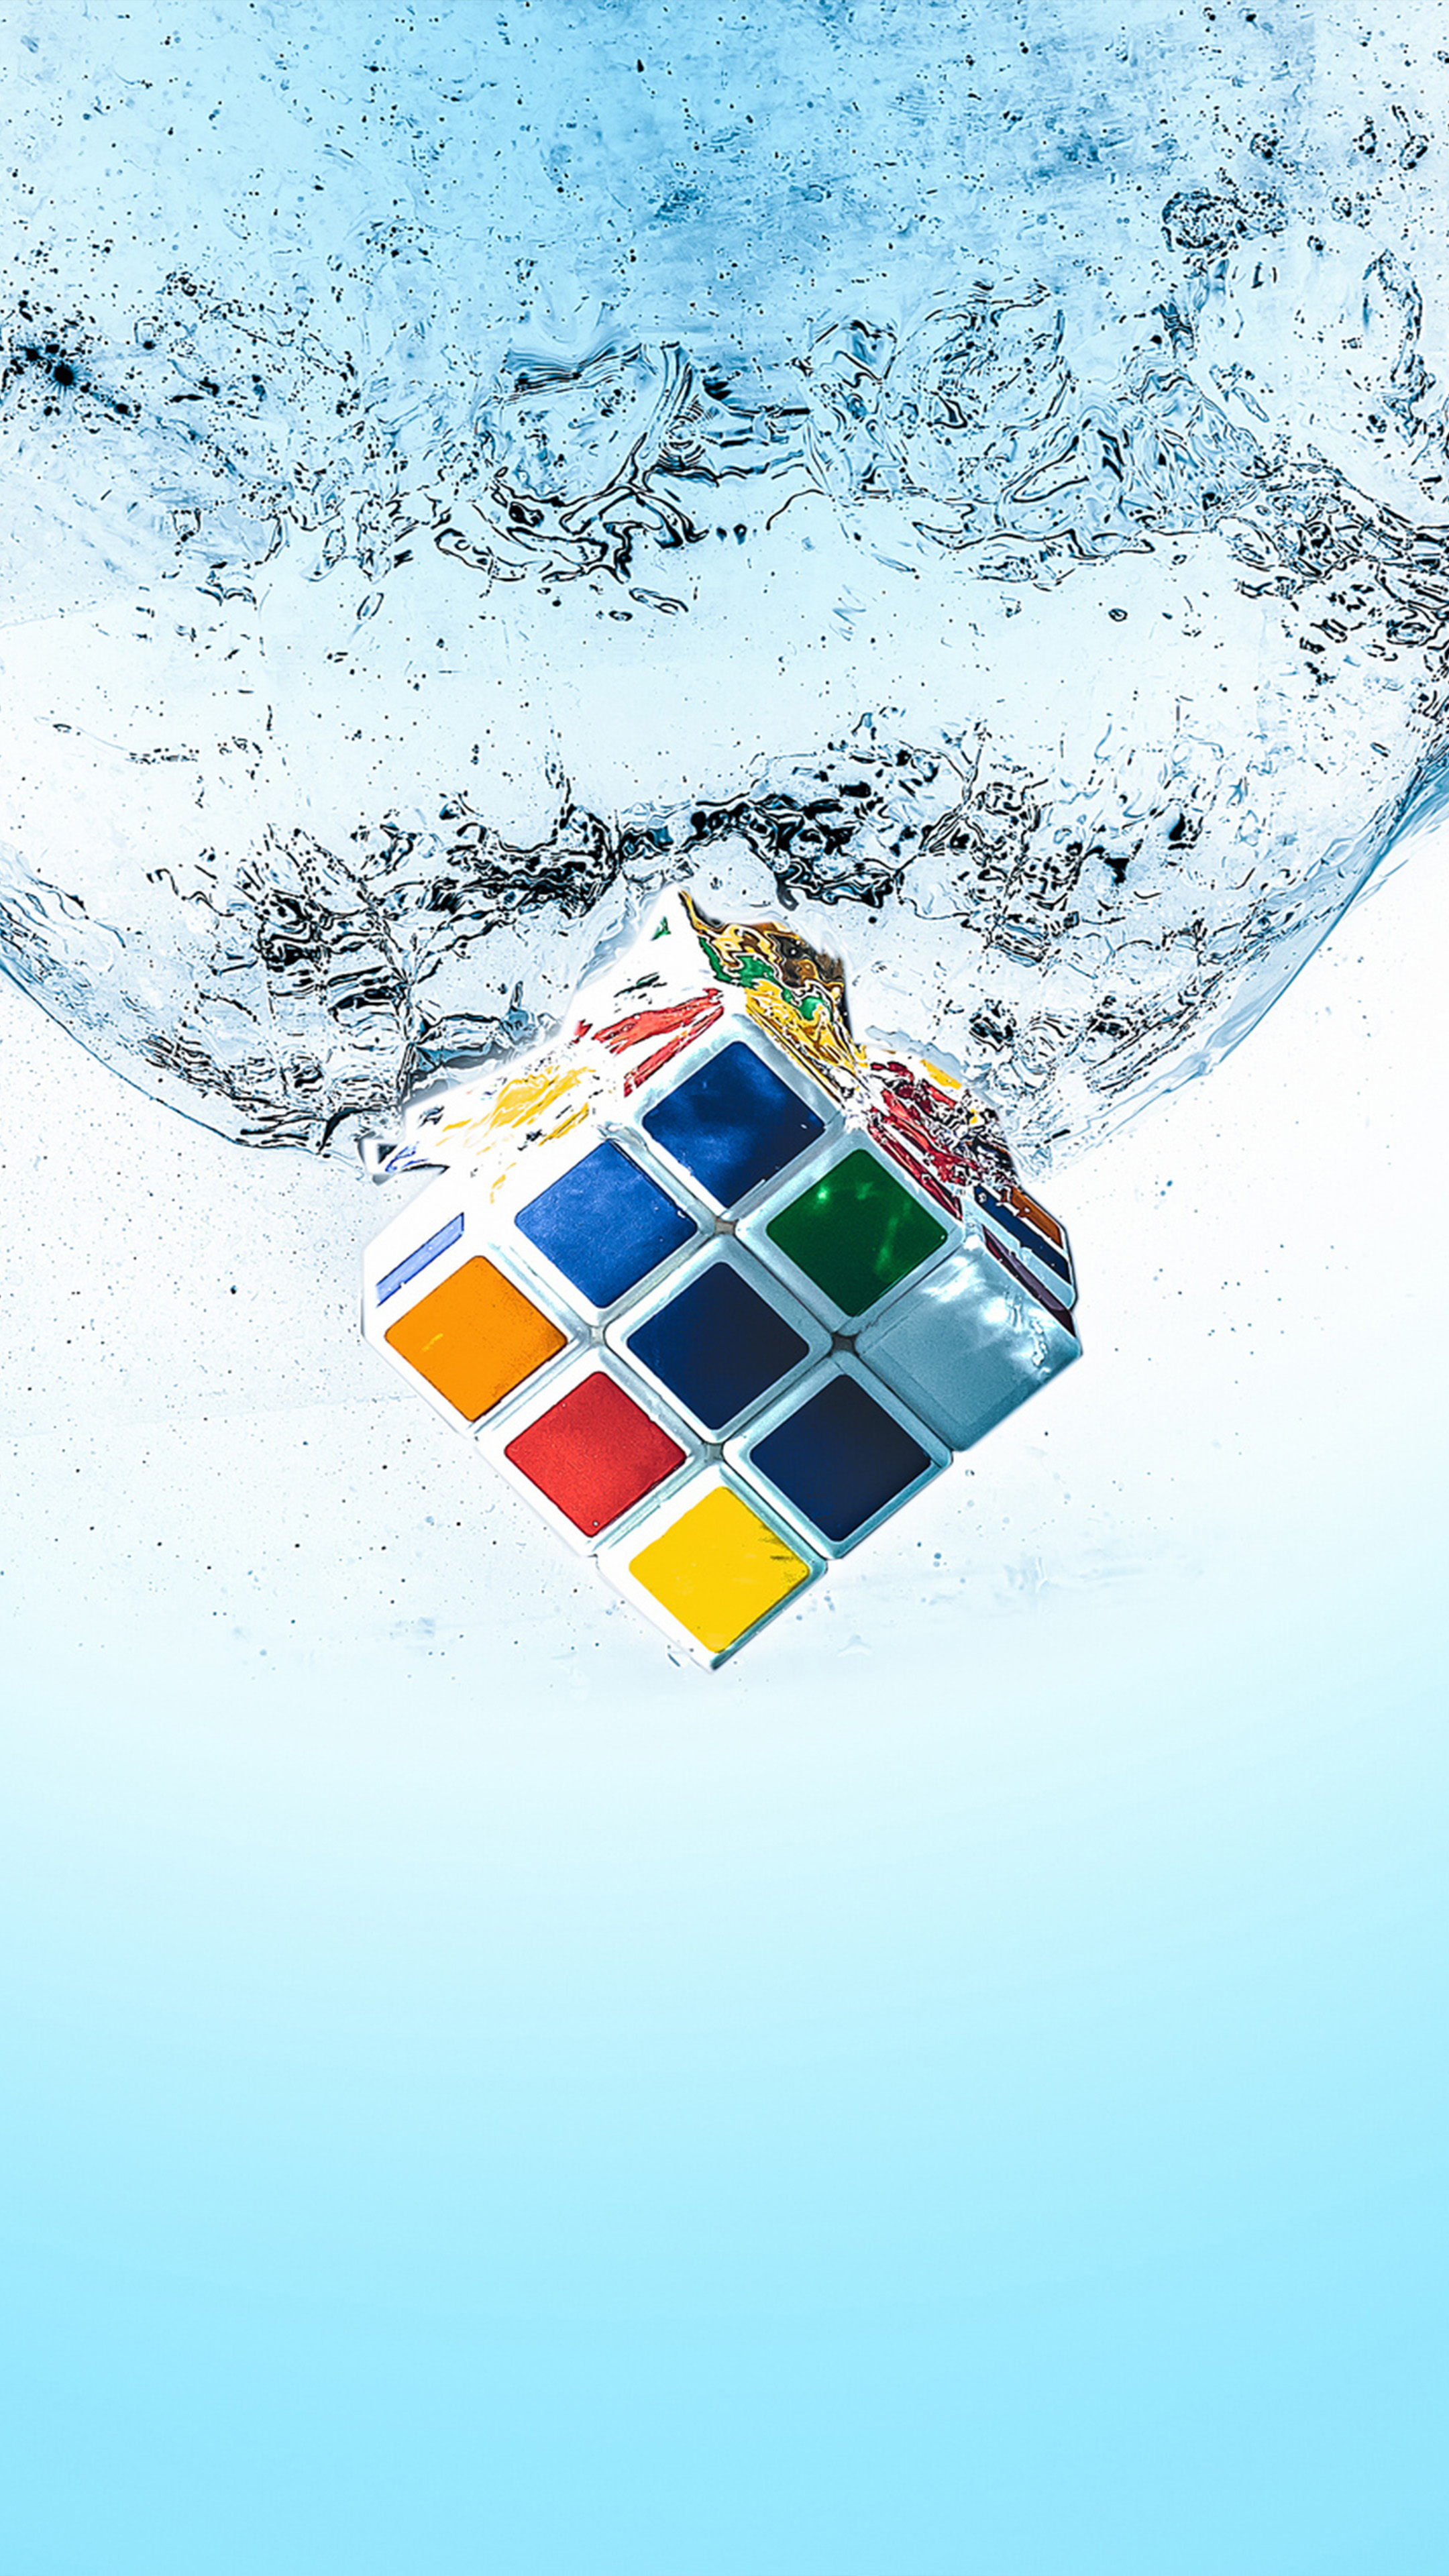 Rubik S Cube Splash Water Free 4k Ultra Hd Mobile Wallpaper